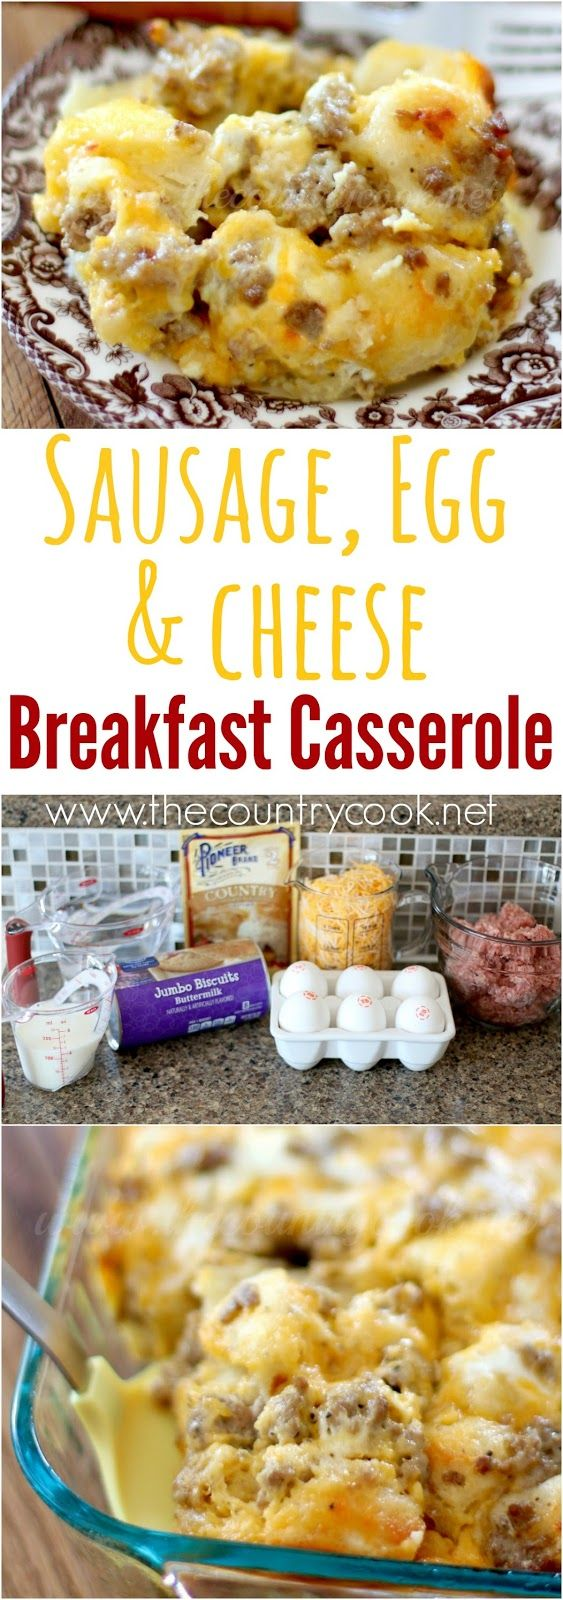 Sausage, Egg & Cheese Biscuit Casserole recipe from The Country Cook…